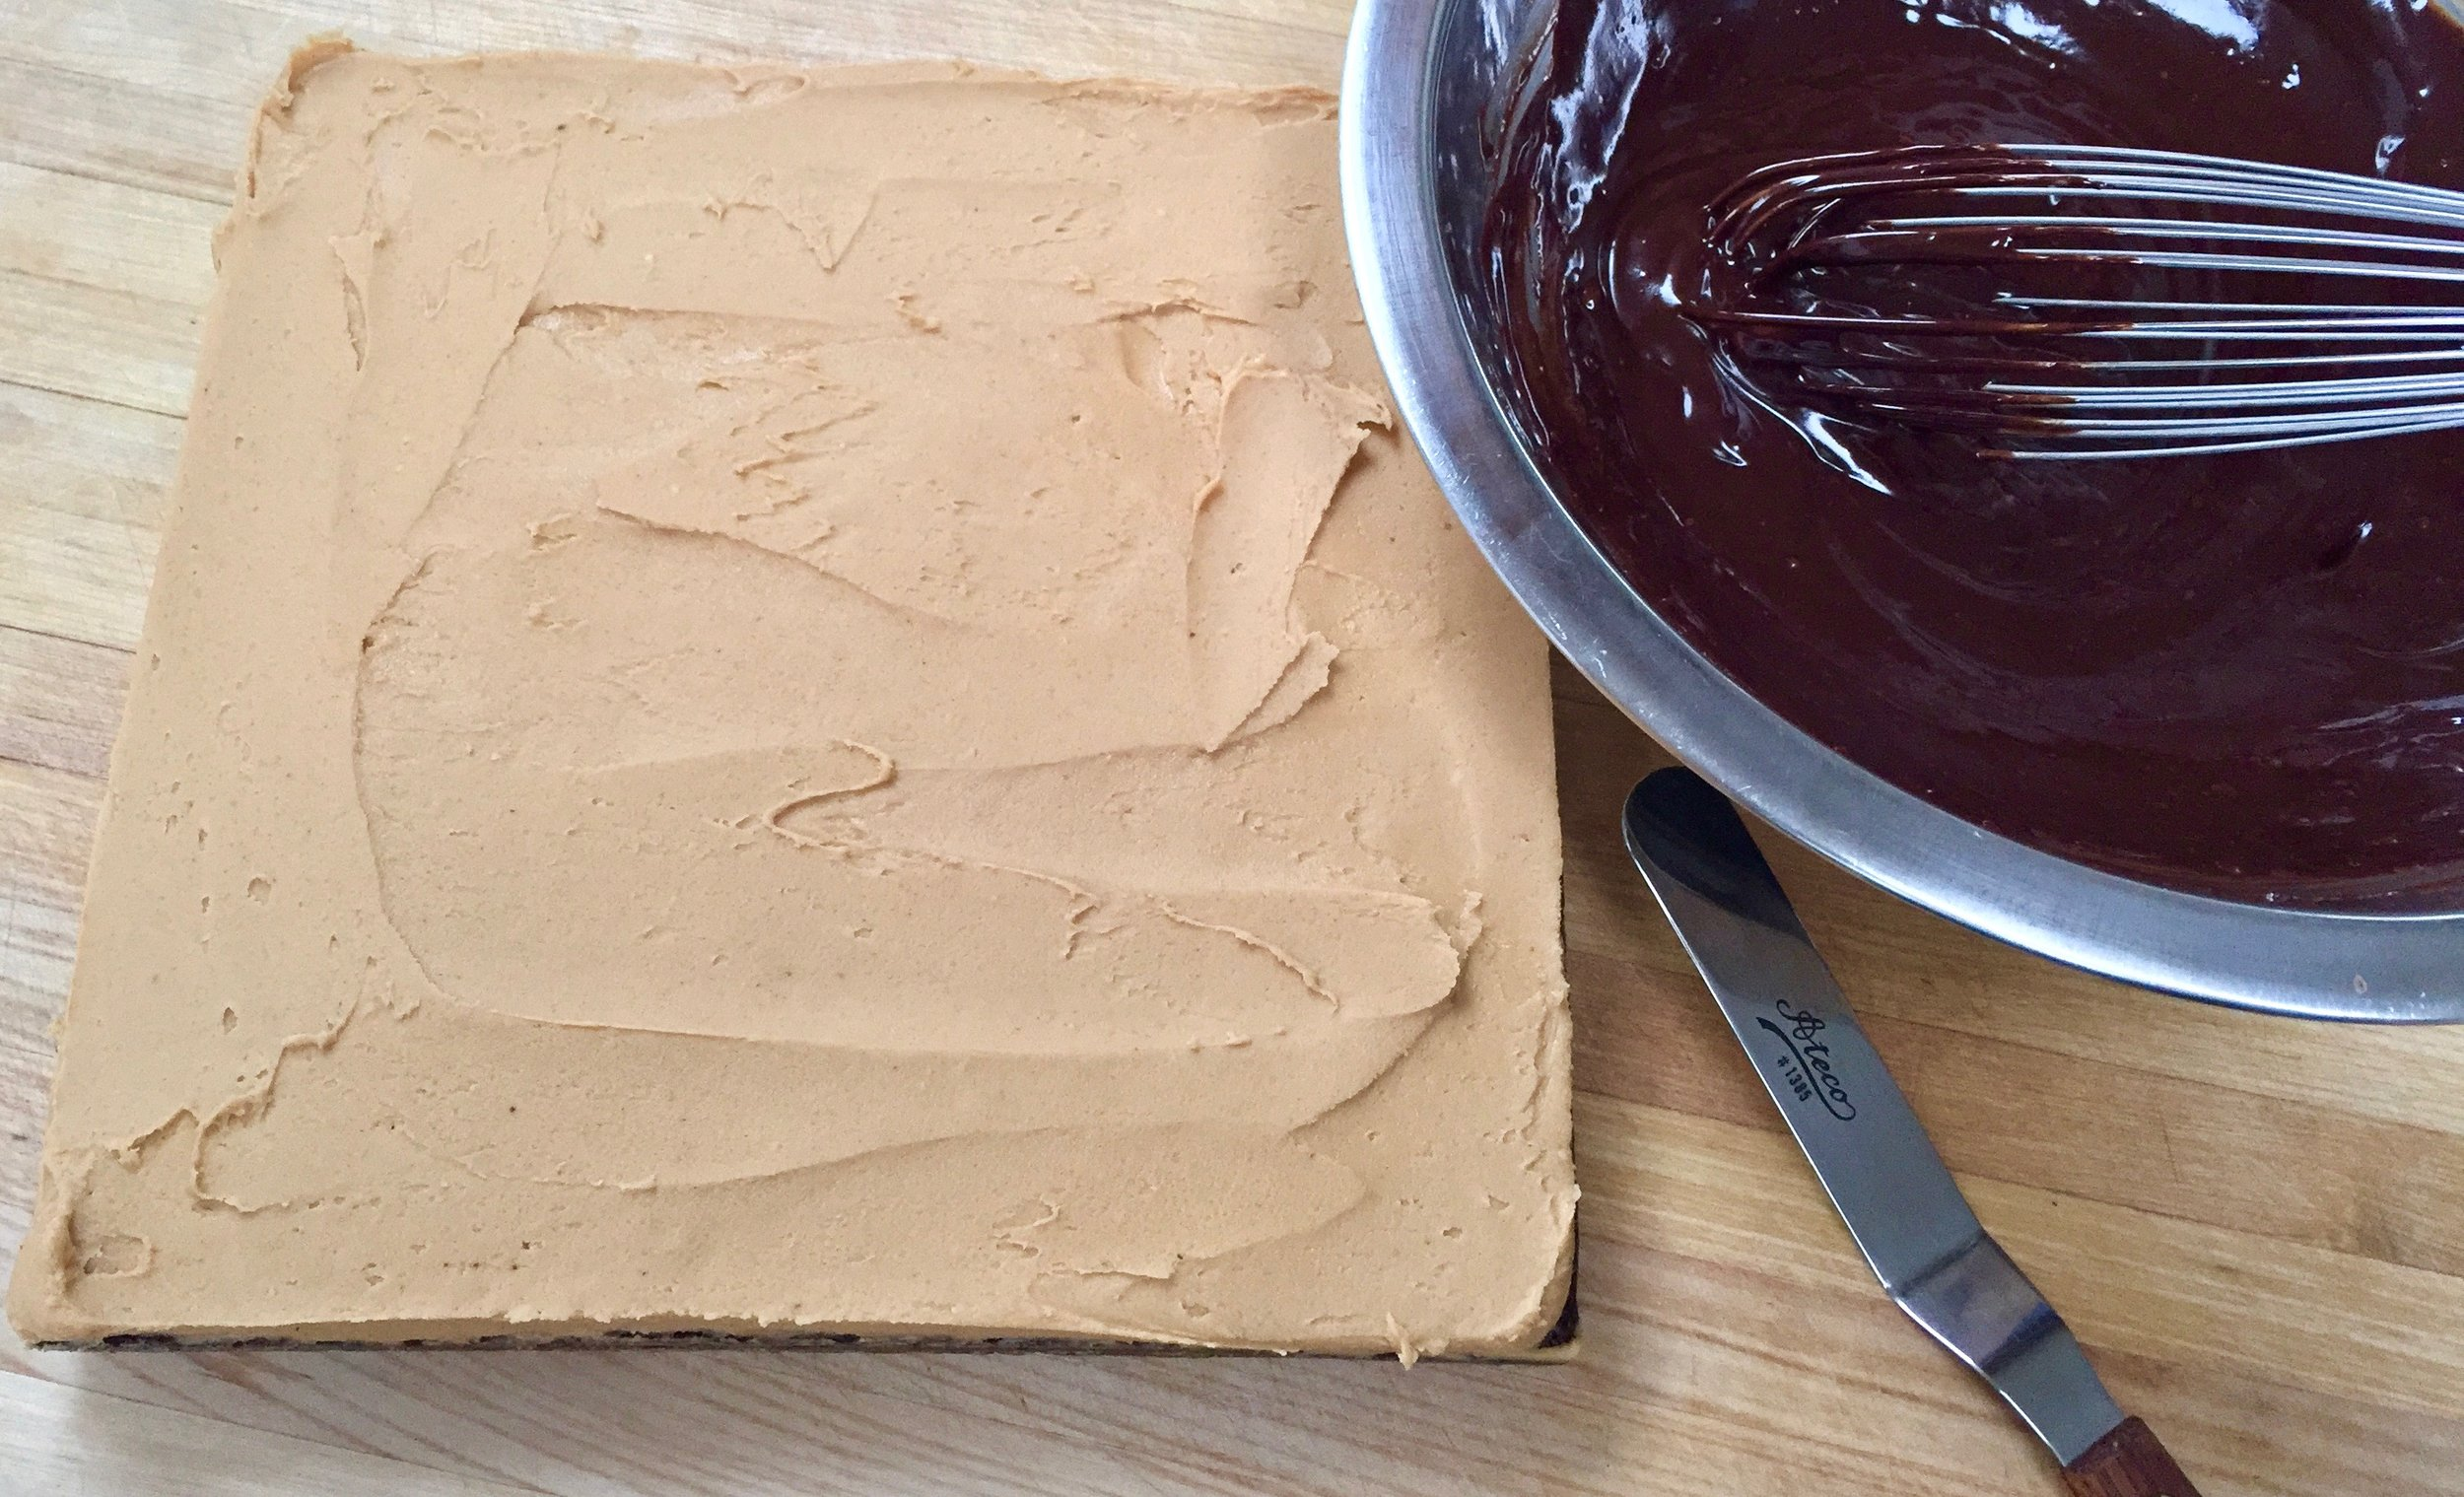 Peanut butter frosting, check.